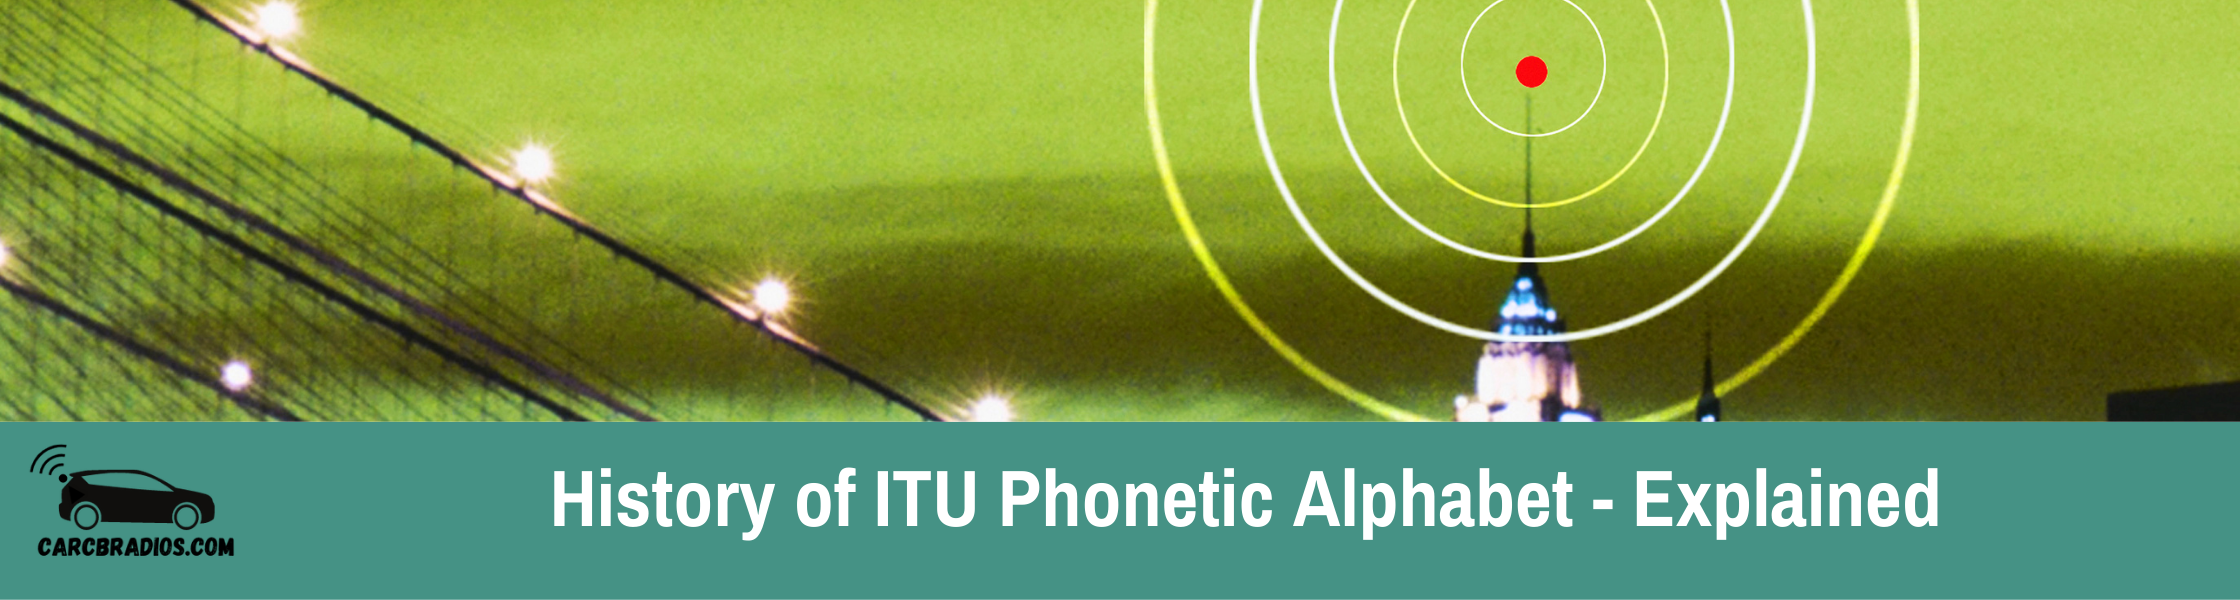 History of ITU Phonetic Alphabet - Explained: ITU phonetic alphabet first appeared in 1913 as a set of six audio frequencies, however, the pronunciation was only based on the English language.